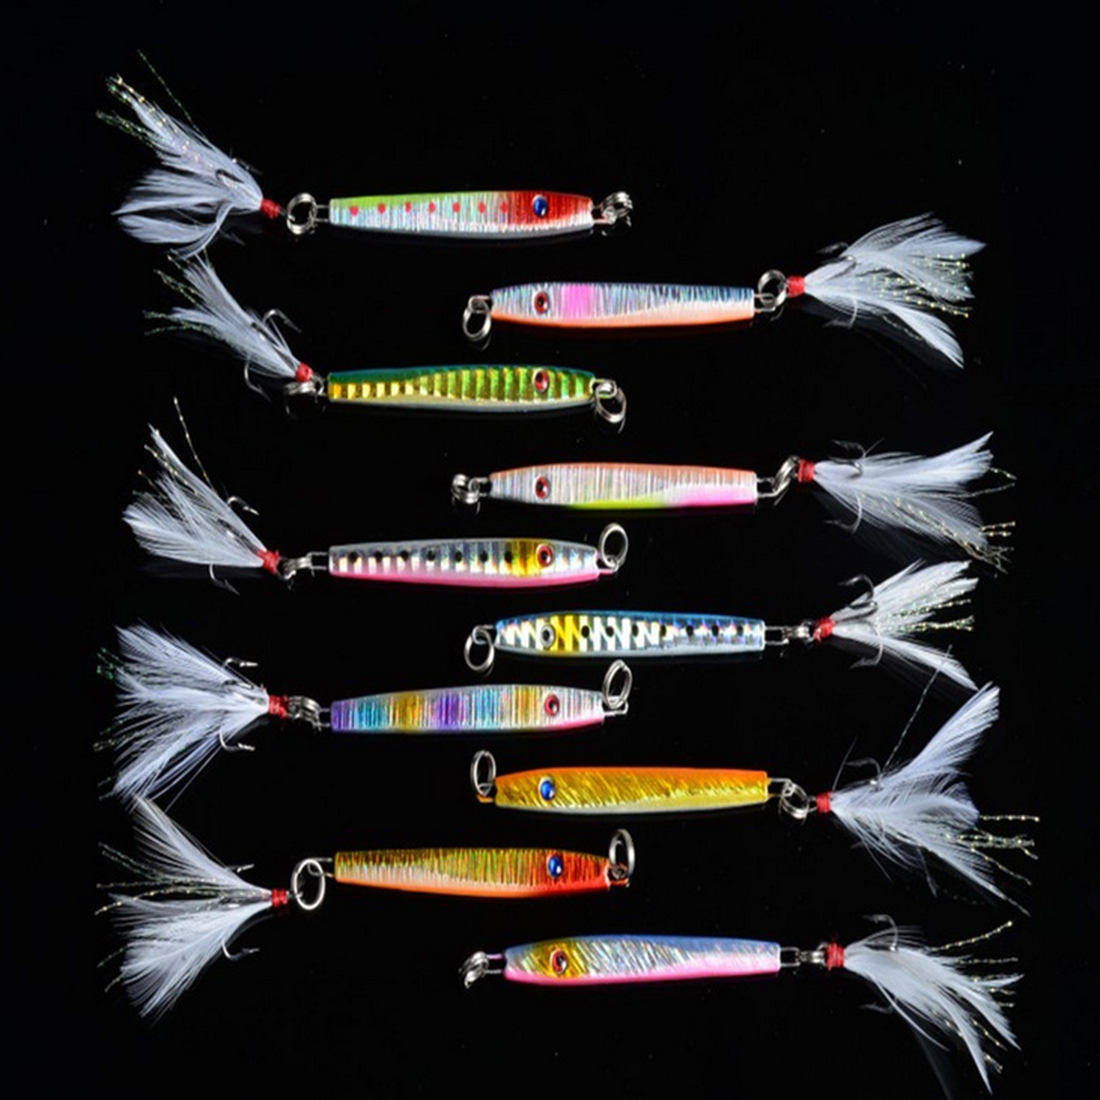 cycle zone 10Pcs Lead Fishing Lure Minnow Fish Head Lead Diving Fish Jig Baits 5.7cm / 10.9g